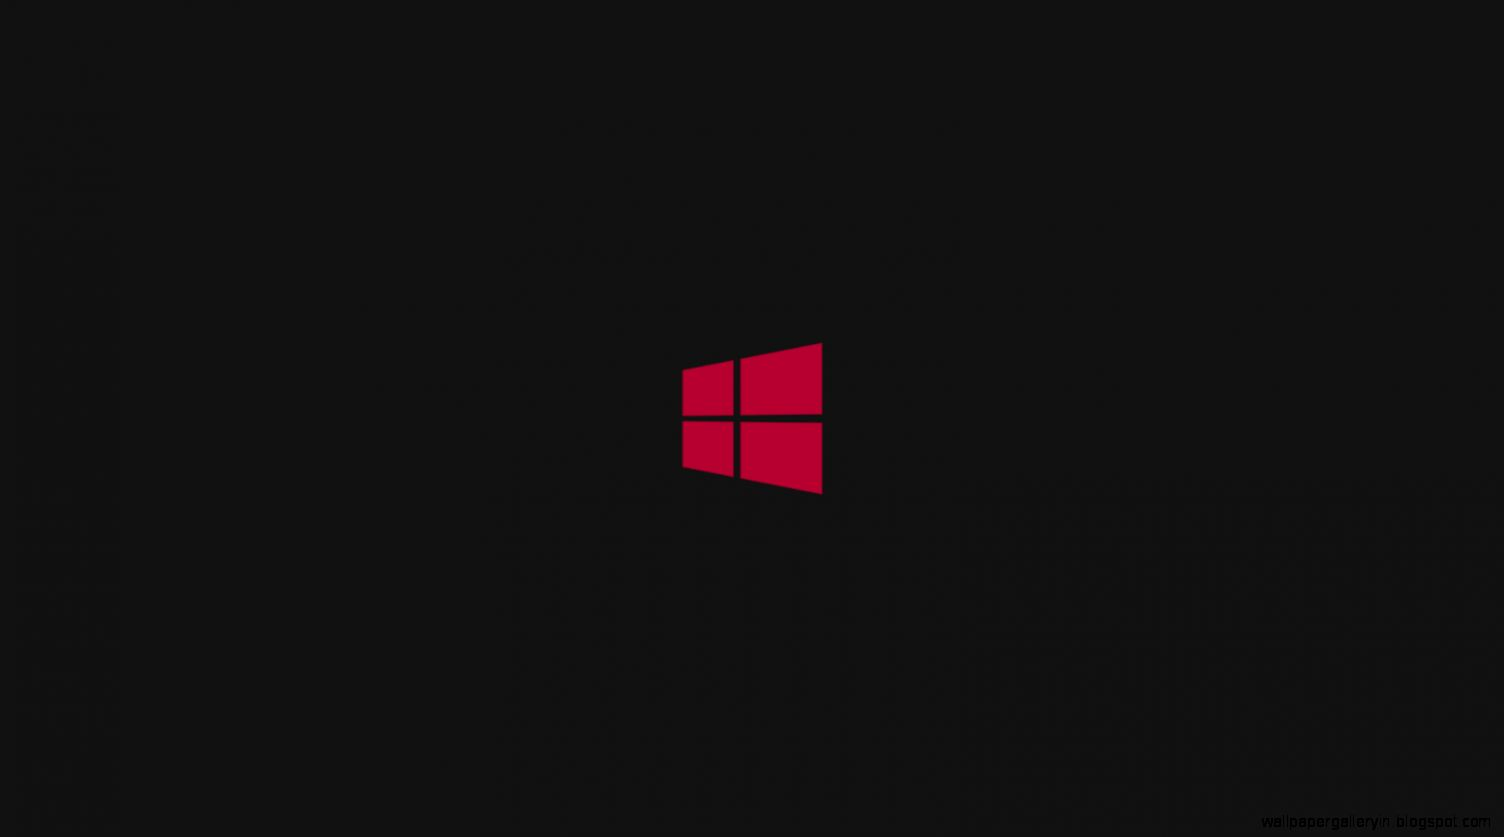 Kumpulan Windows 8 Wallpaper Hd Red